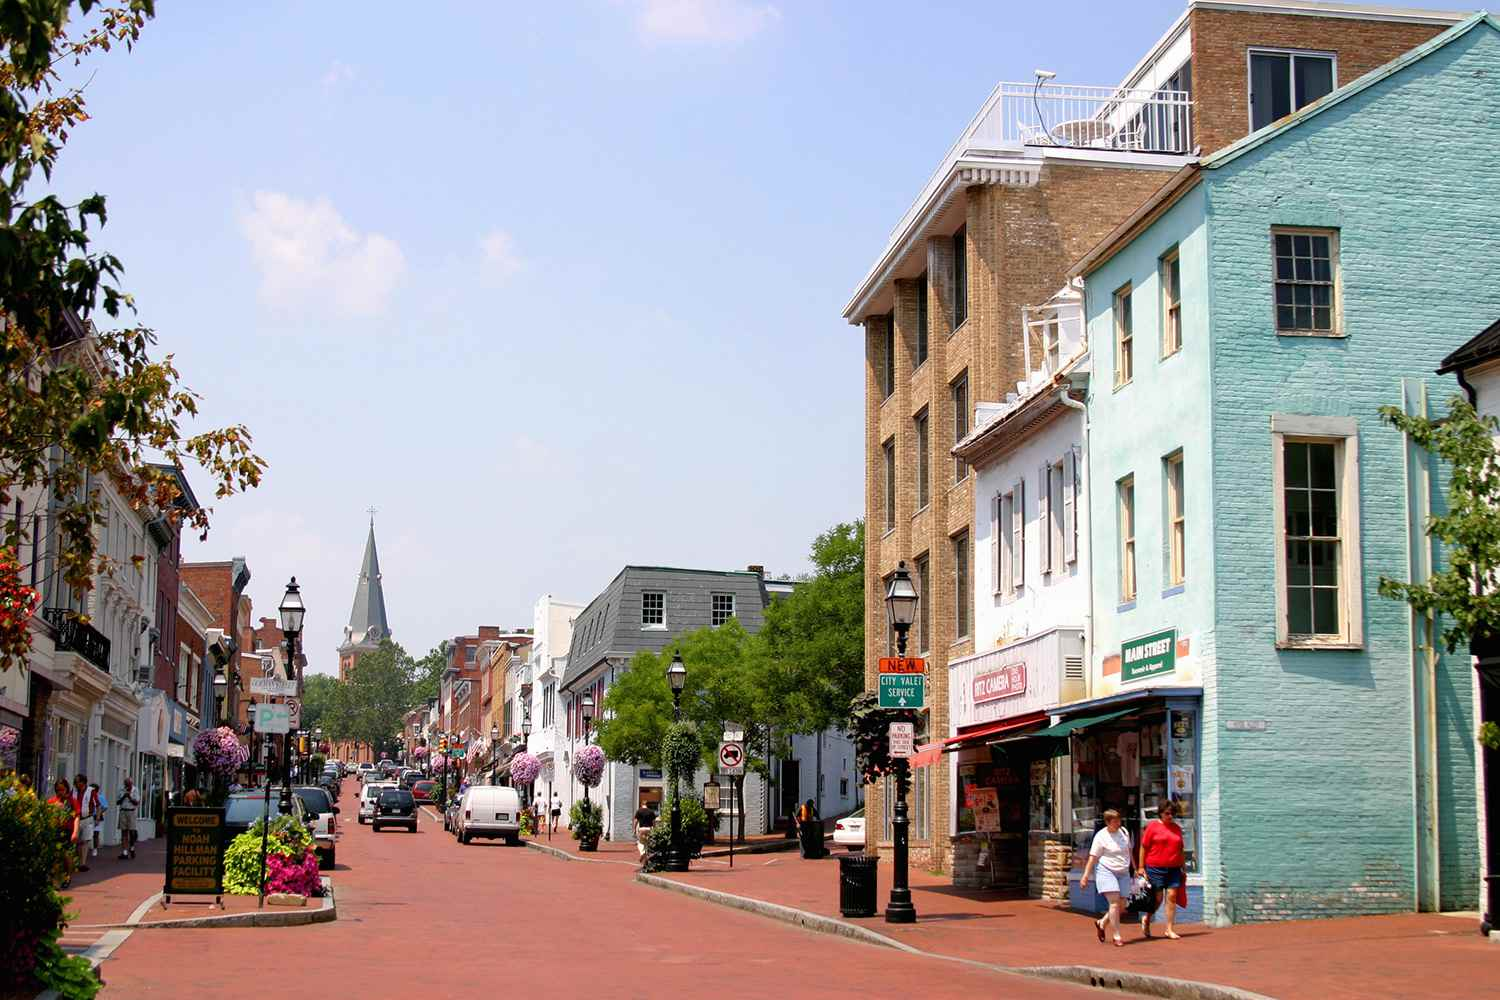 A street view of picturesque Annapolis